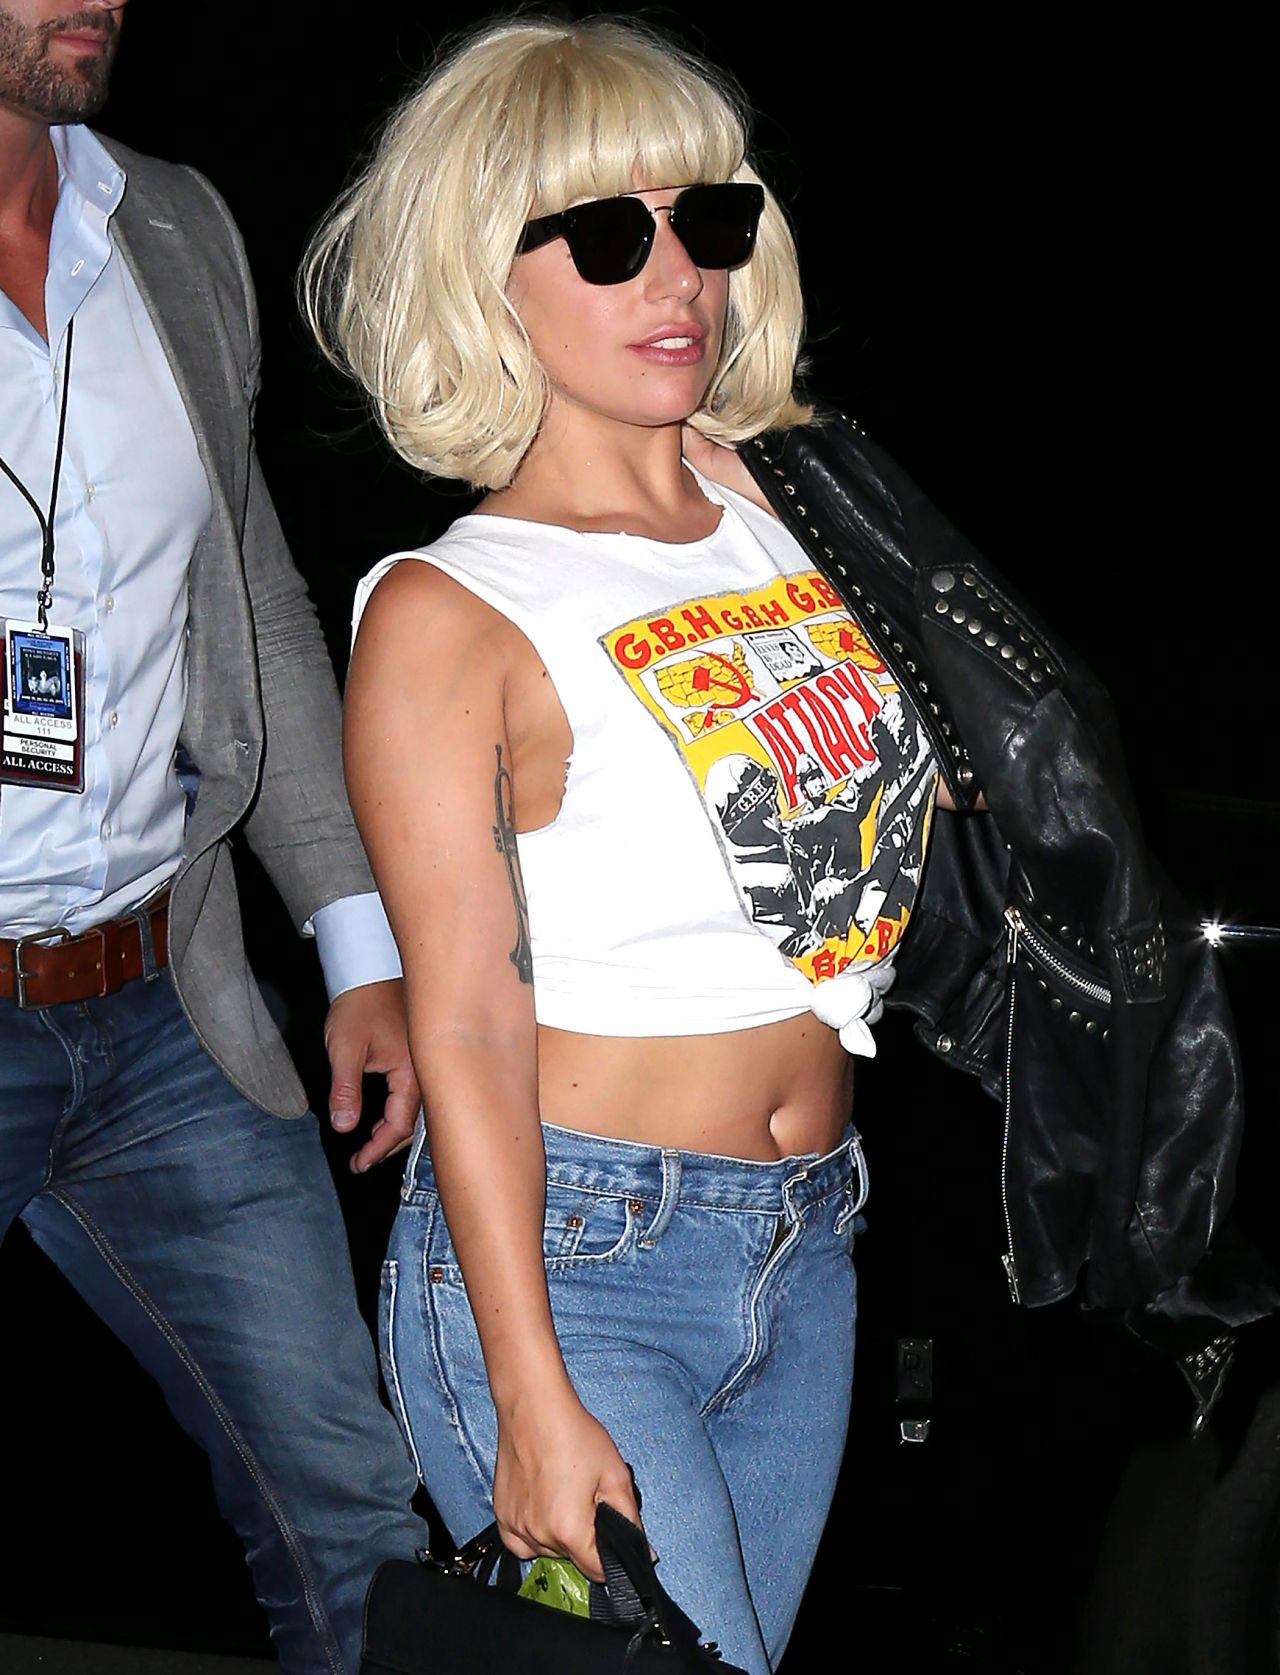 lady-gaga-street-style-nyc-june-2015_1